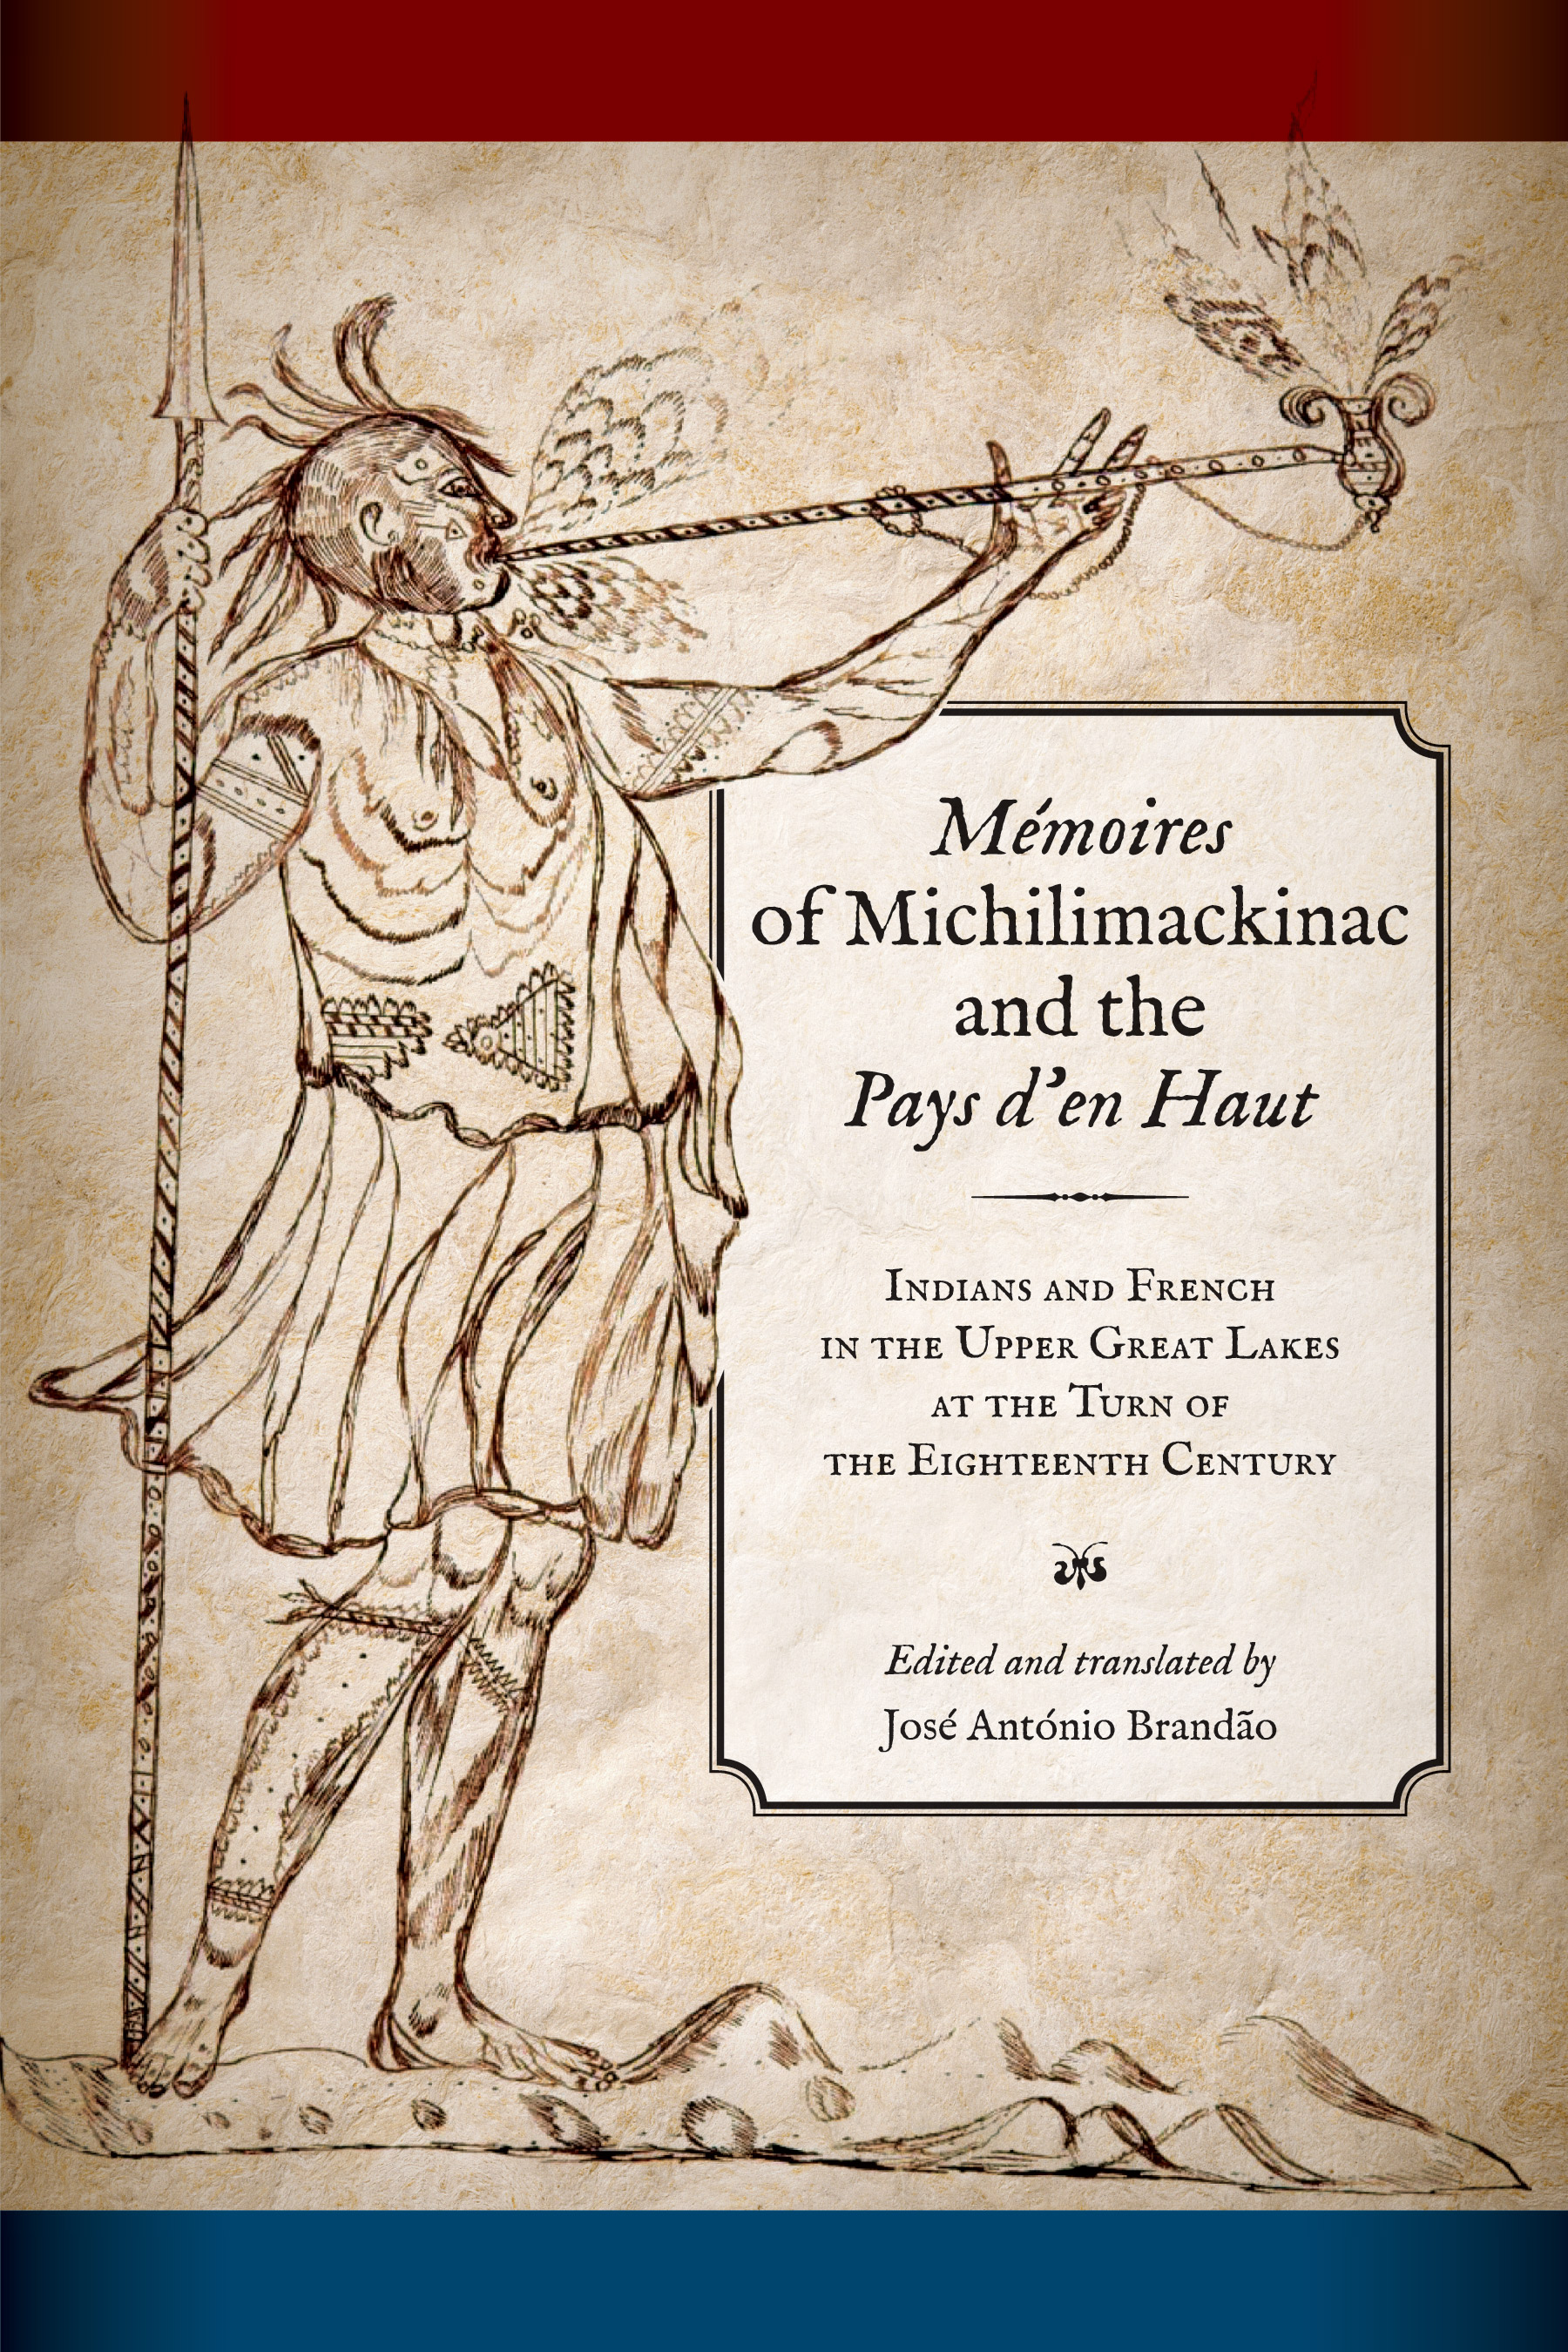 Mémoires of Michilimackinac and the Pays d'en Haut cover